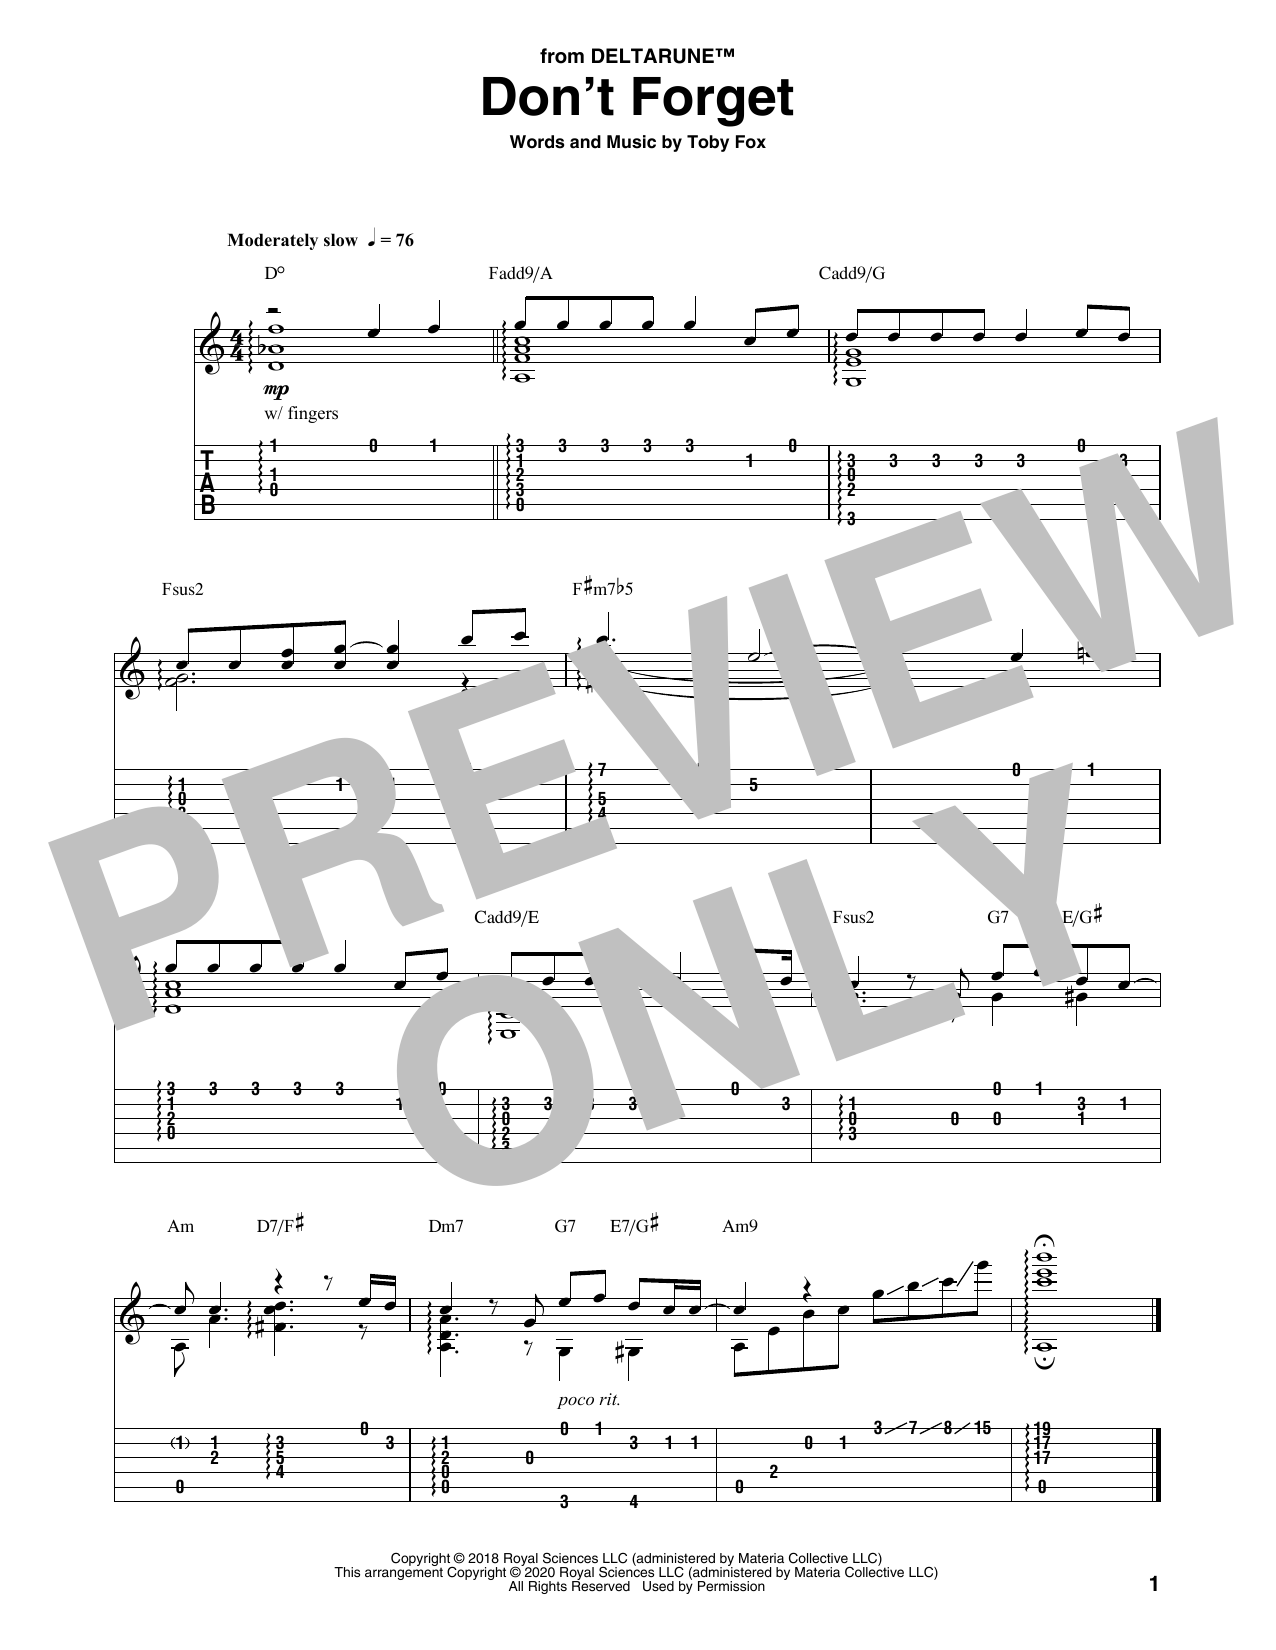 Don't Forget (from Deltarune) Sheet Music